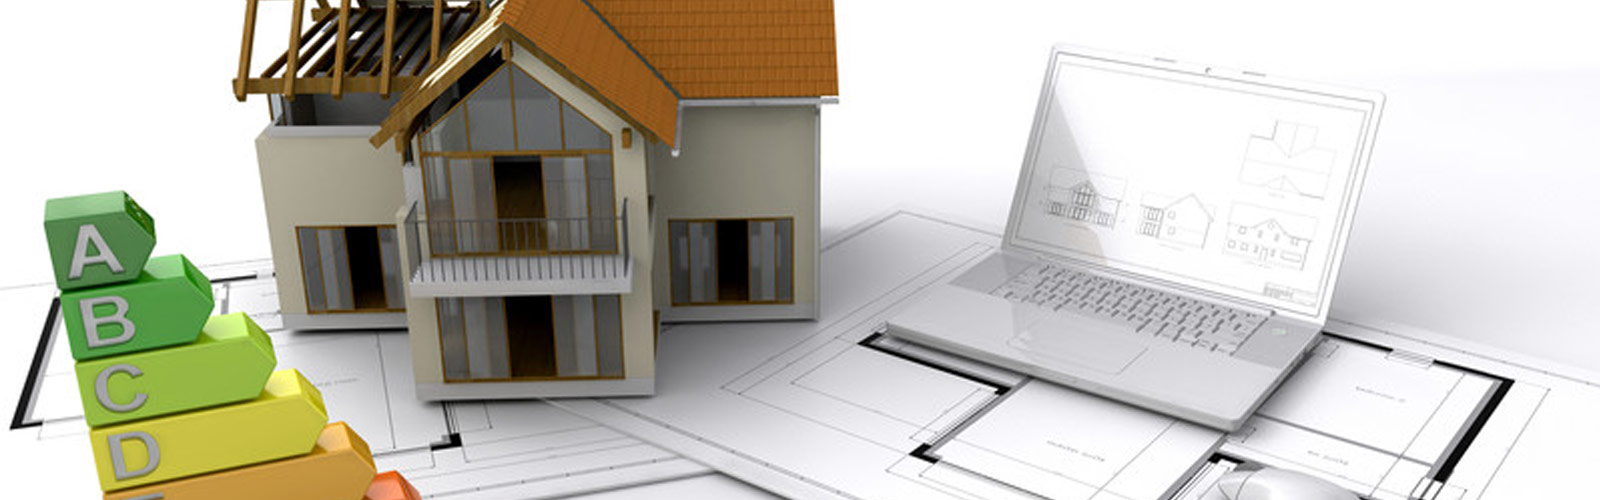 Bayfield Design - professional architecture services based in Newcastle upon Tyne - new builds renovations and extensions